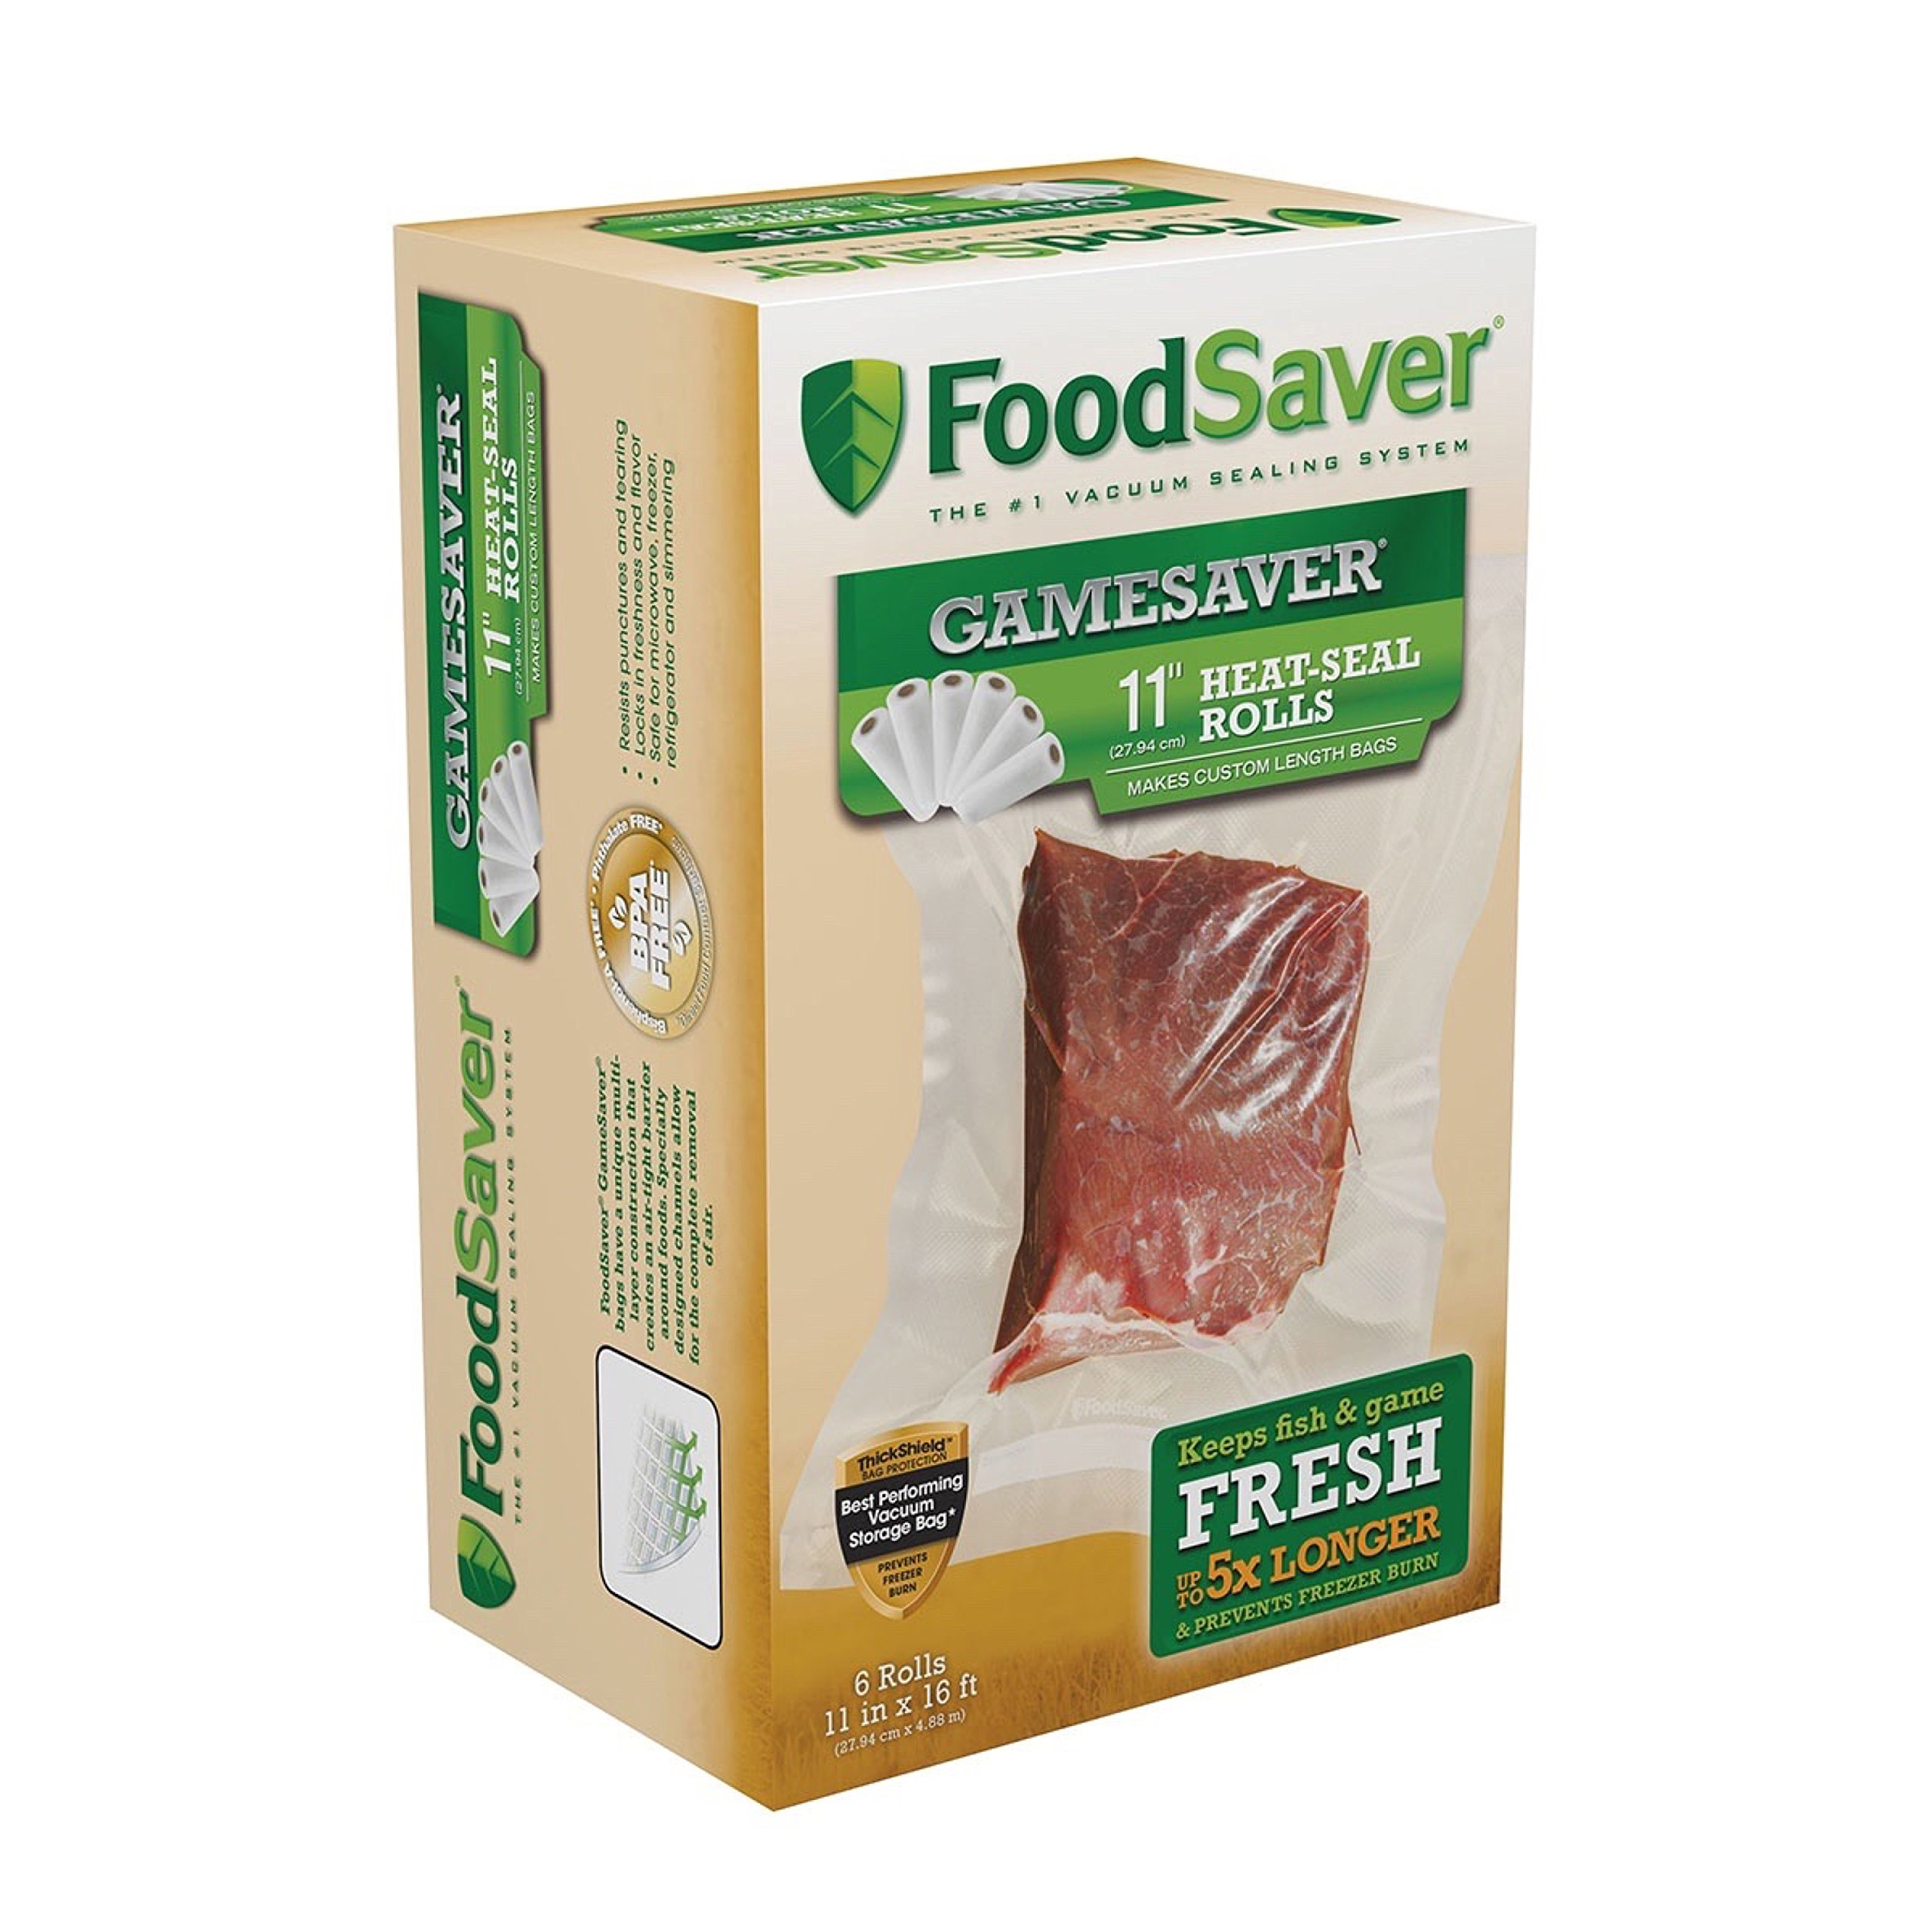 FoodSaver GameSaver 11'' x 16' Vacuum Seal Roll with BPA-Free Multilayer Construction by FoodSaver